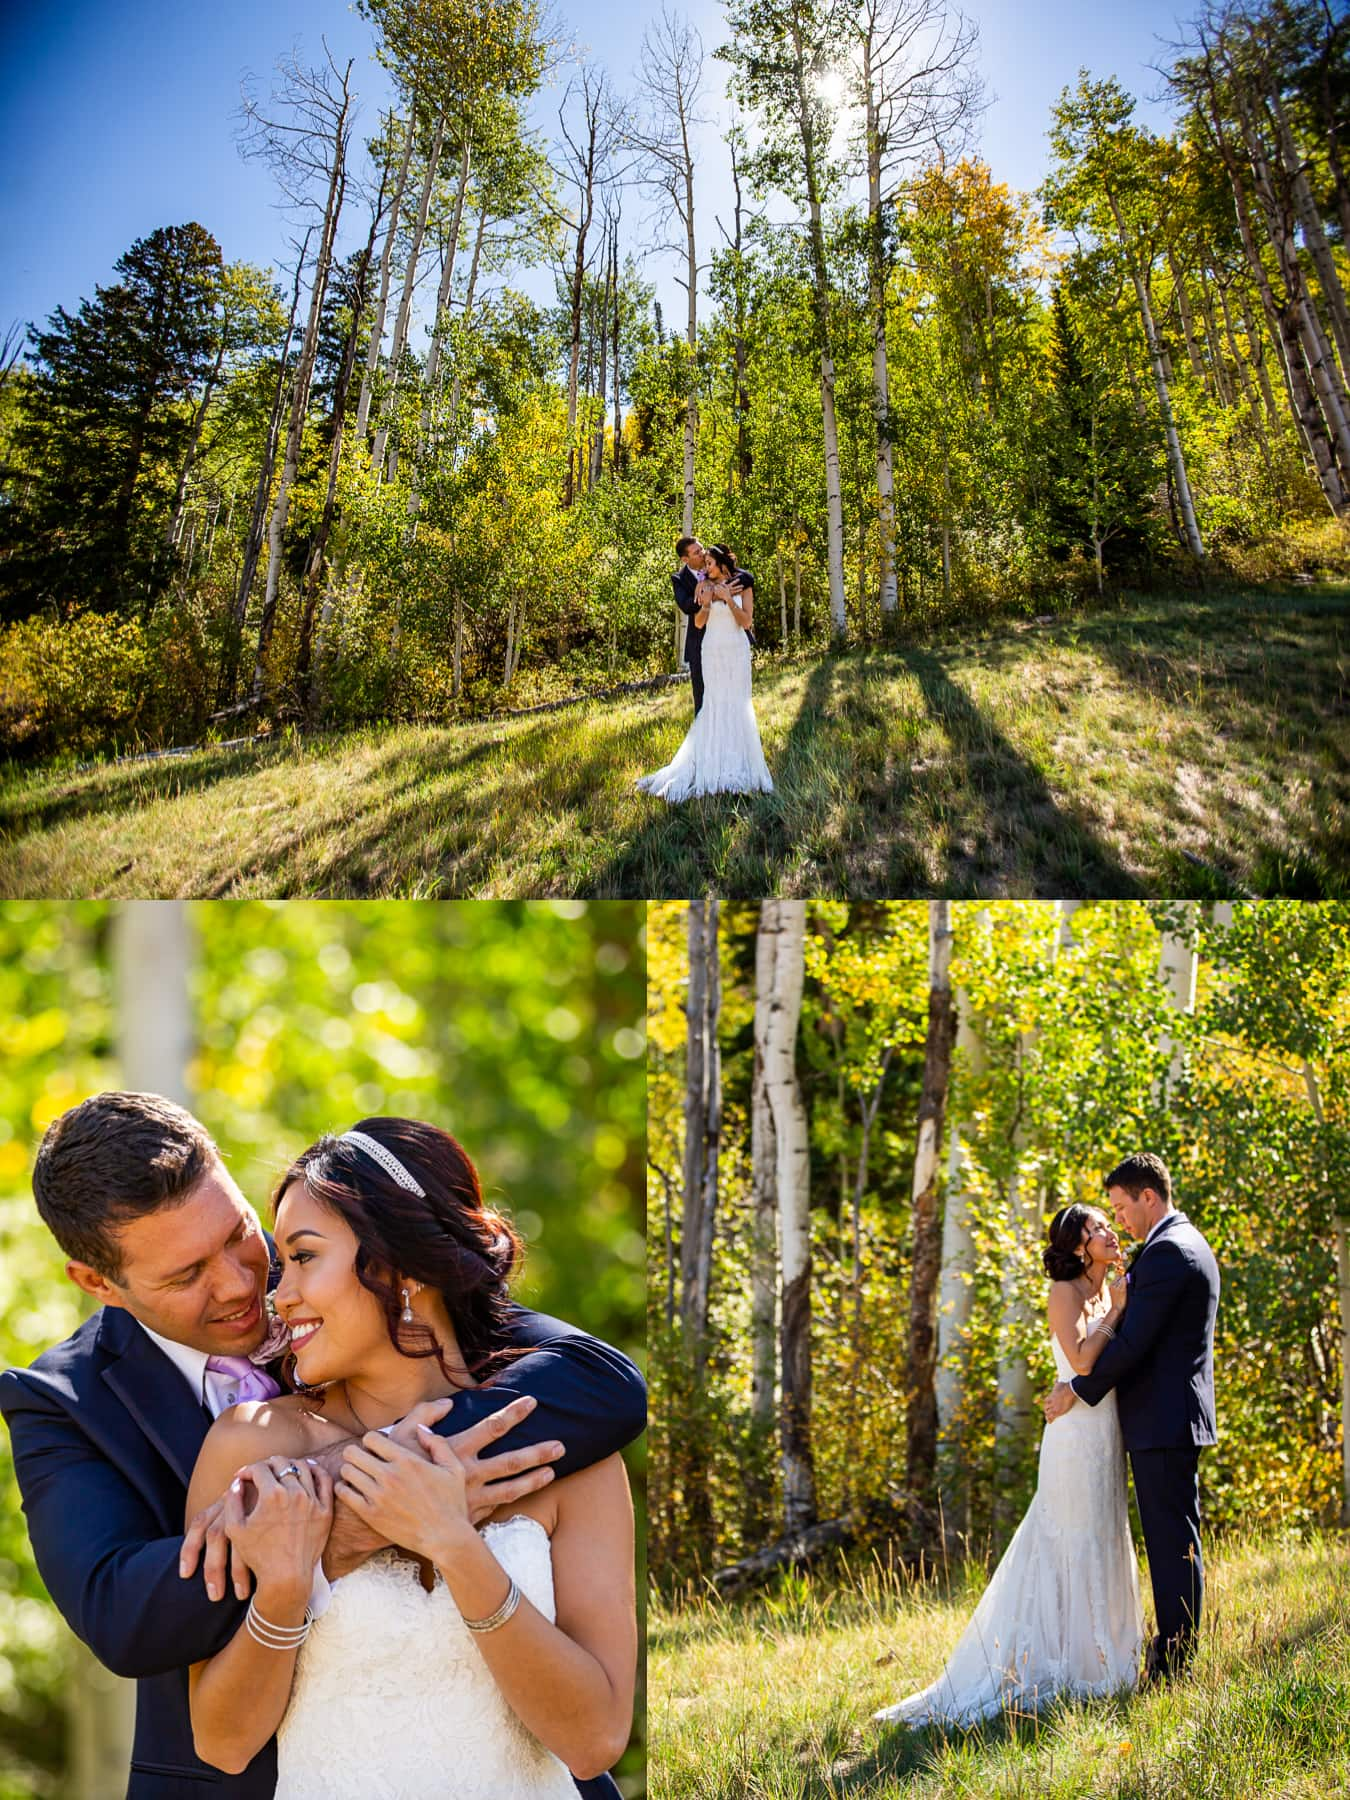 05SeptemberAspenColoradoWeddingPhotos